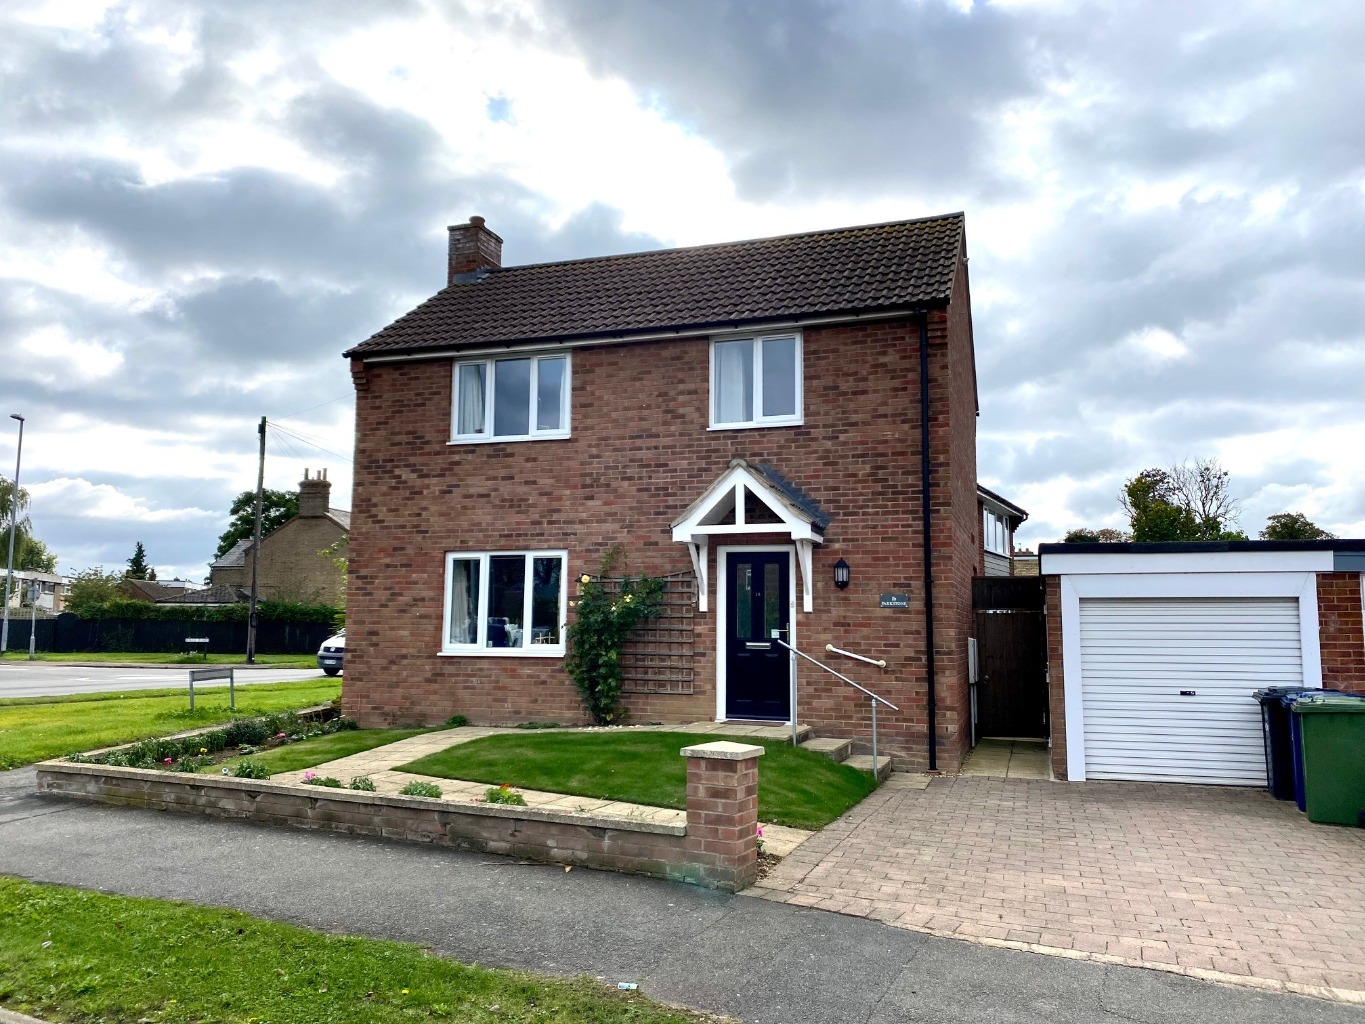 3 bed detached house for sale in Orchard Road, St. Neots  - Property Image 1